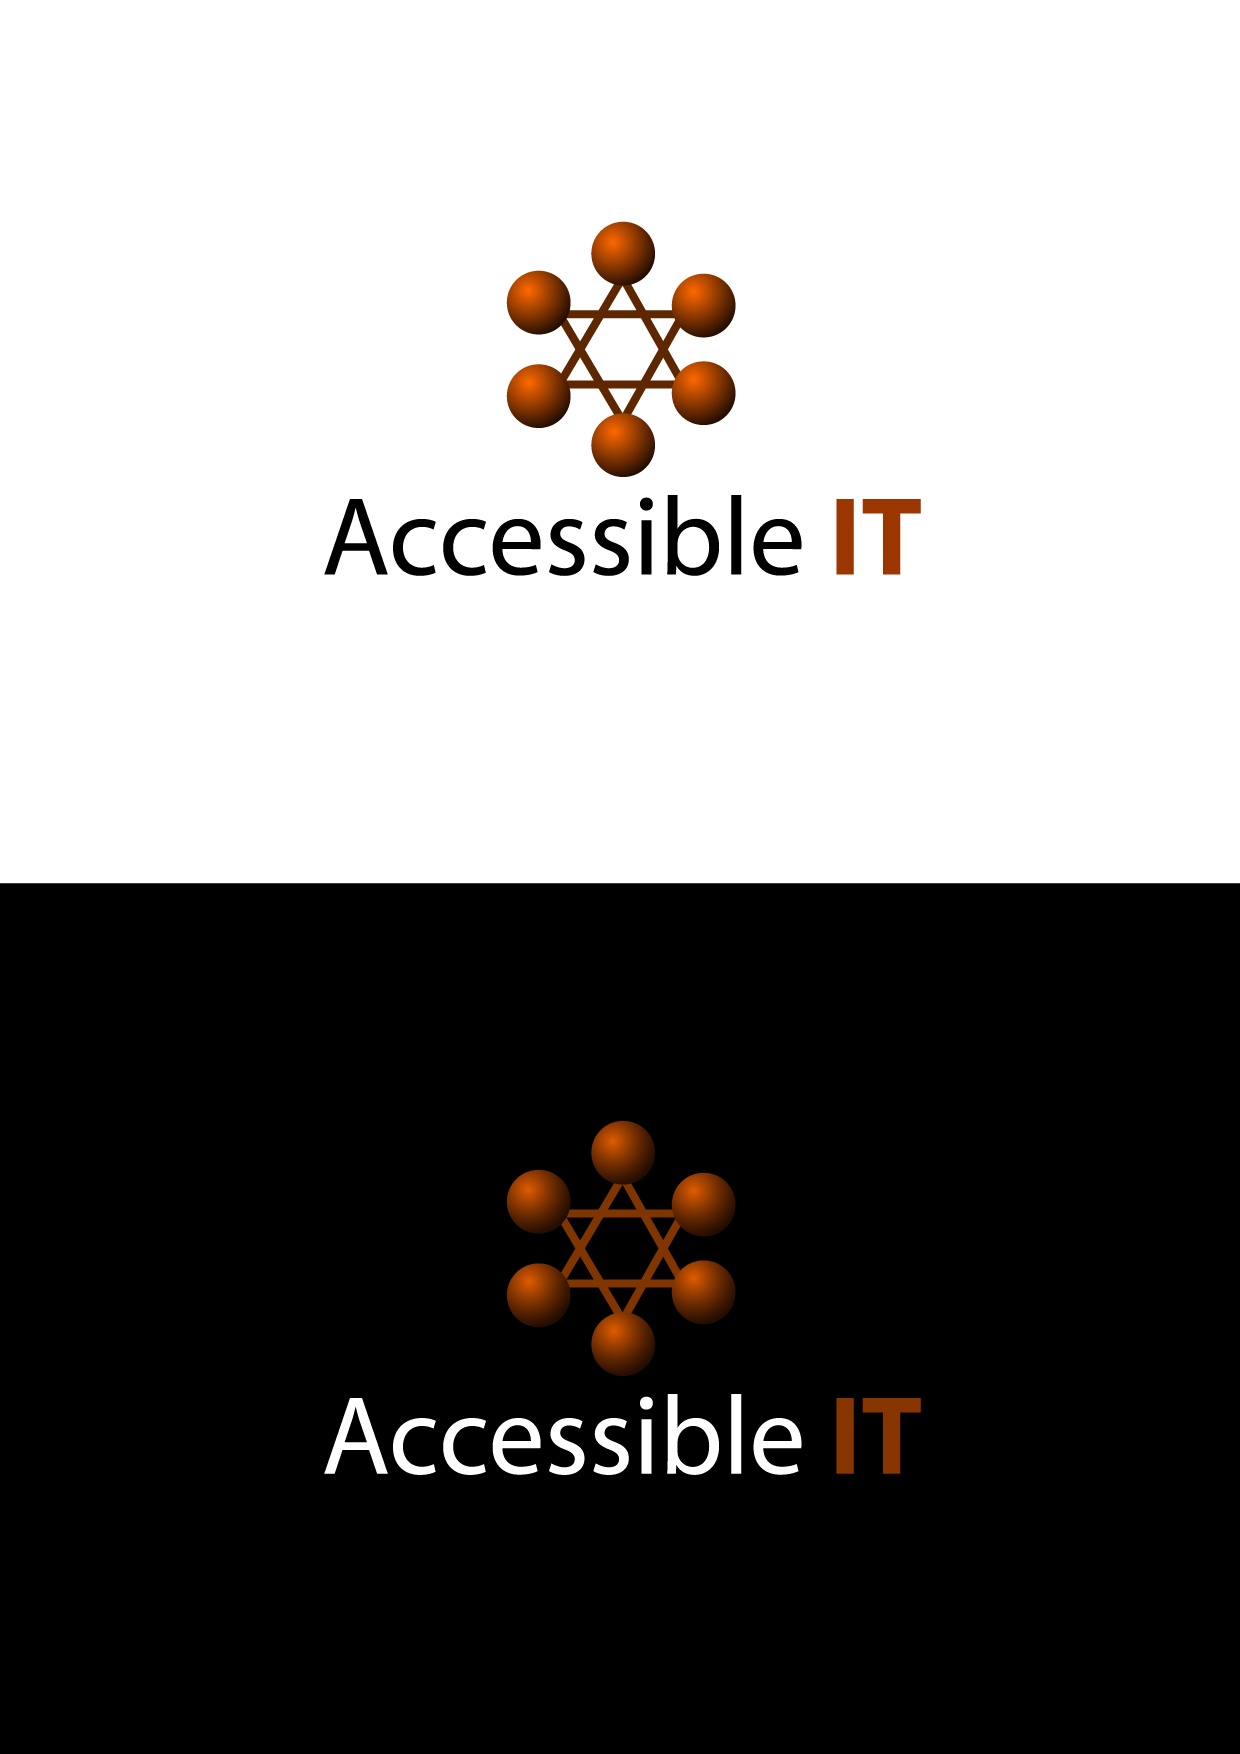 Logo Design by Wilfredo Mendoza - Entry No. 32 in the Logo Design Contest Logo Design Needed for Exciting New Company Accessible IT.